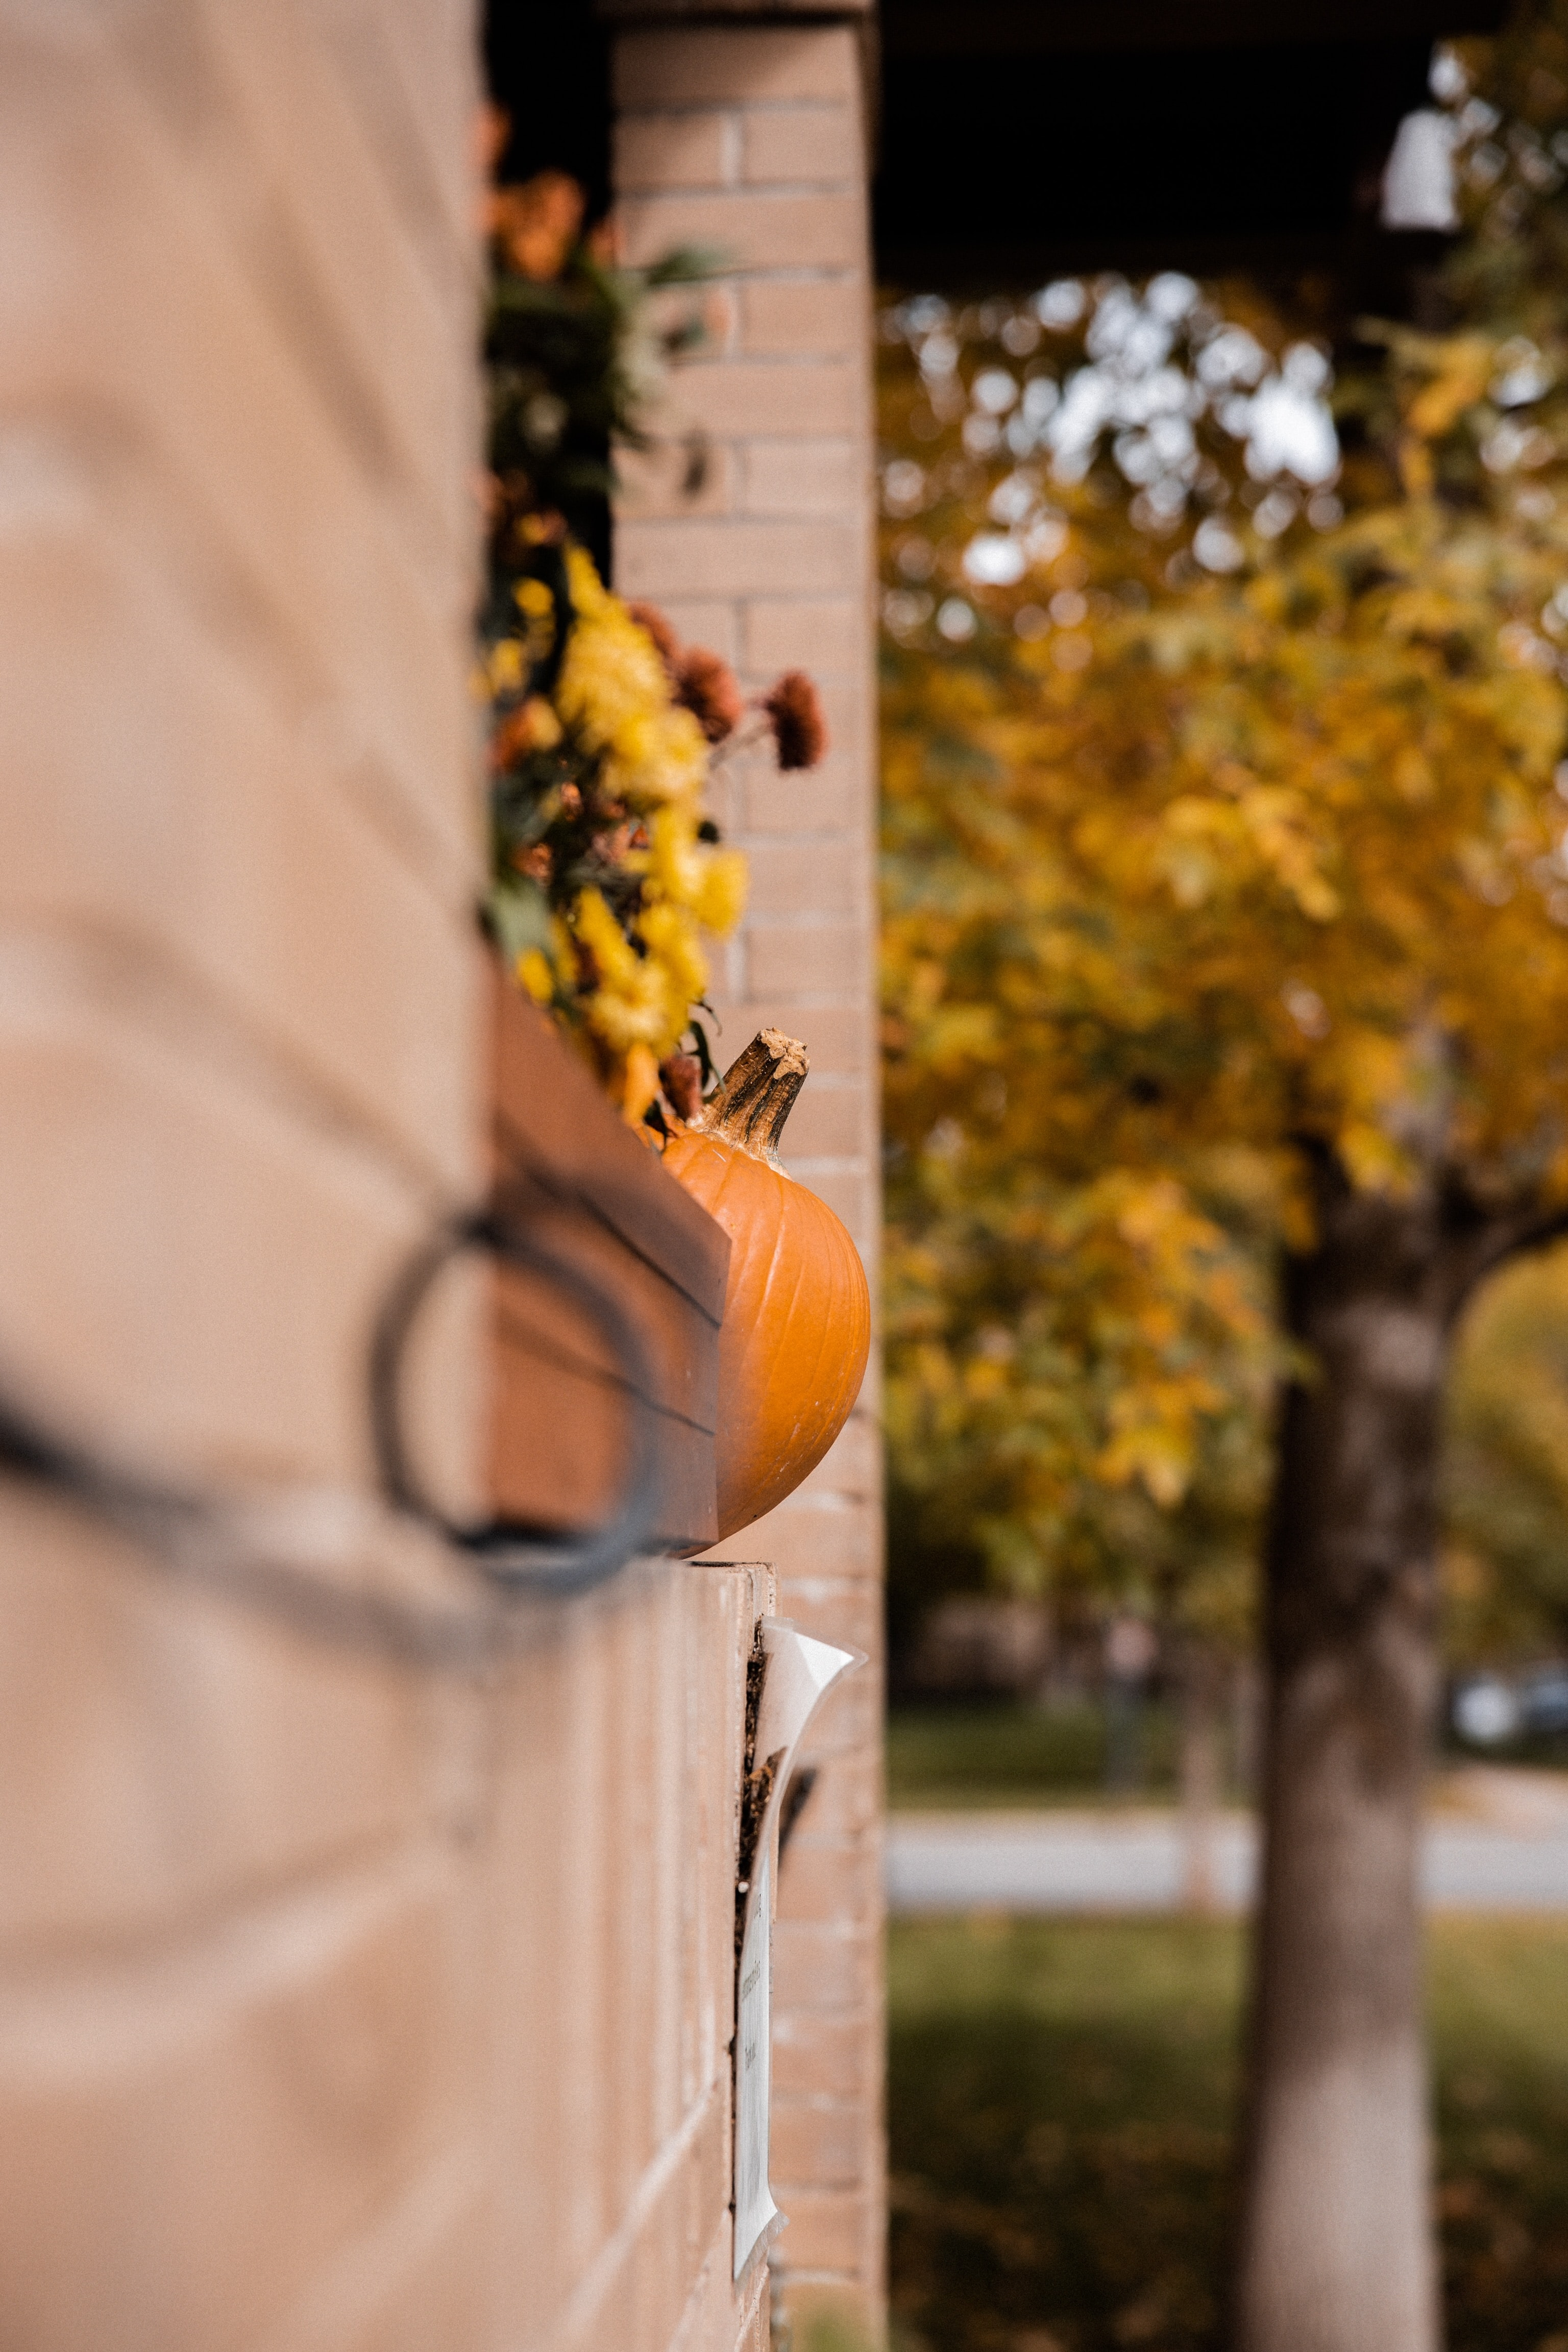 97332 download wallpaper Miscellanea, Miscellaneous, Autumn, Halloween, Building, Pumpkin screensavers and pictures for free